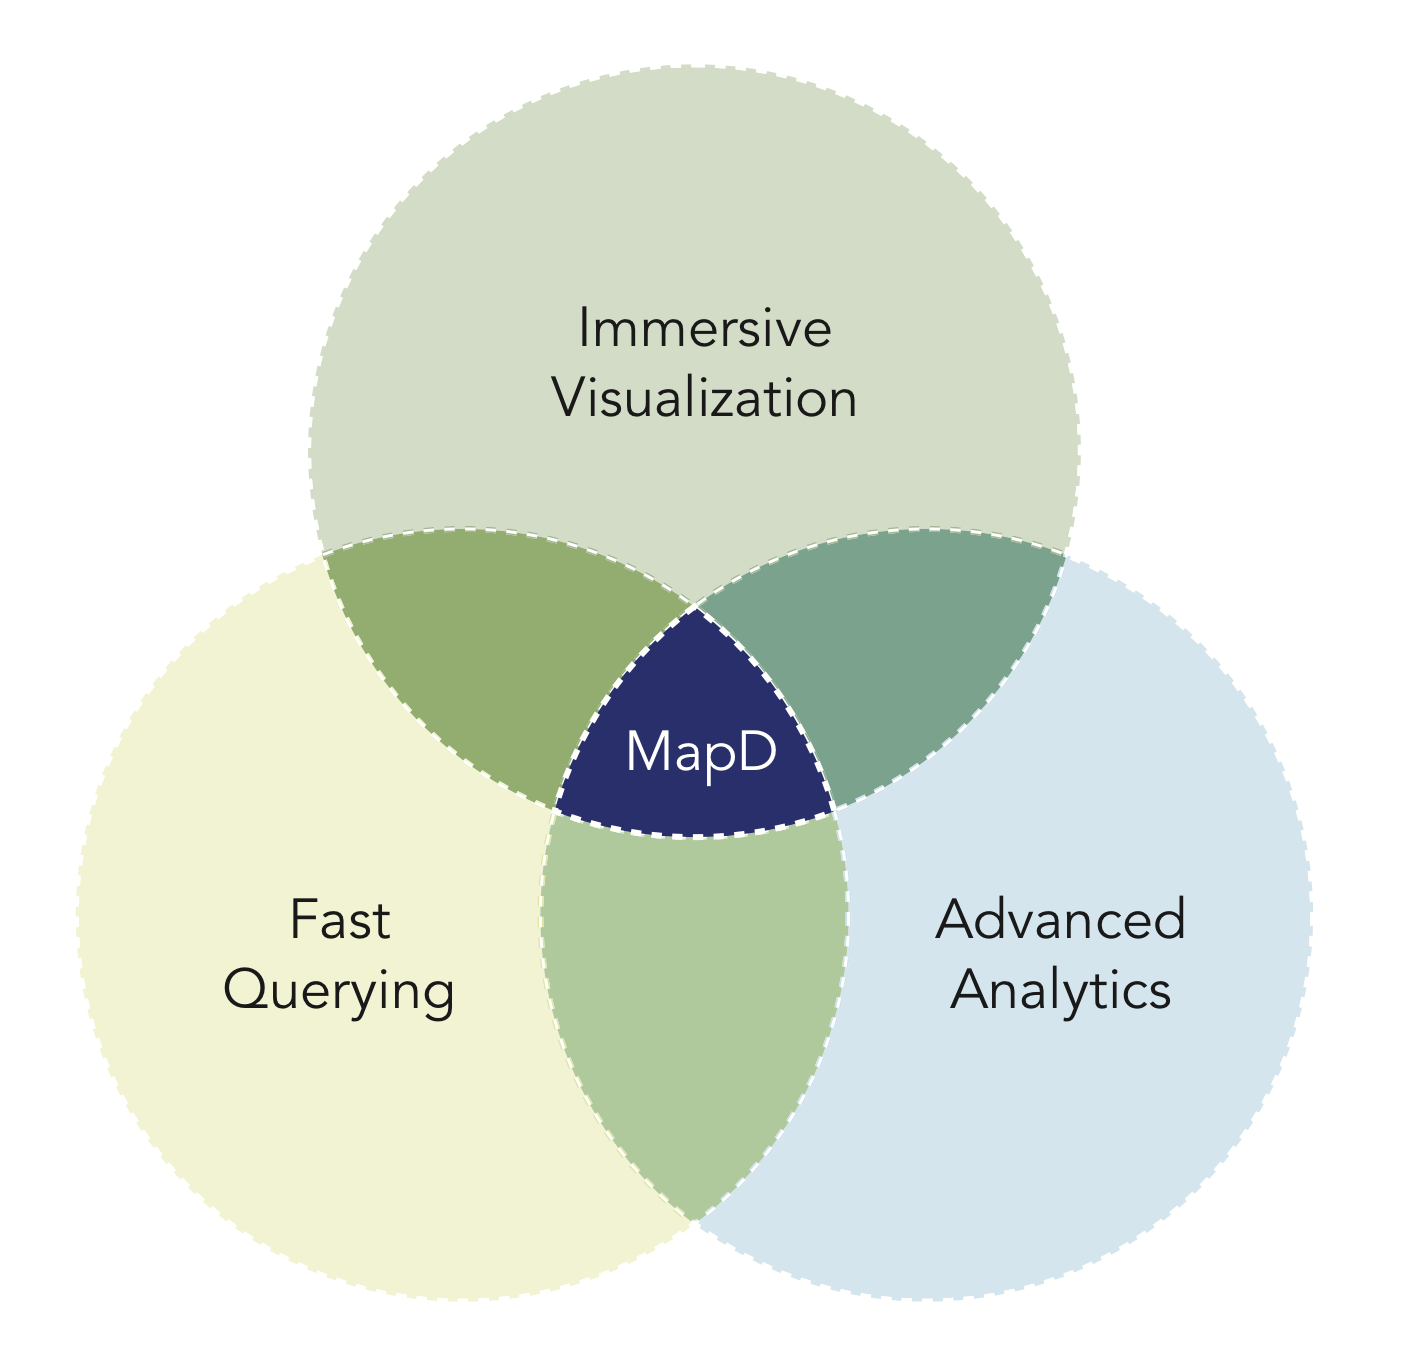 MapD Functionality